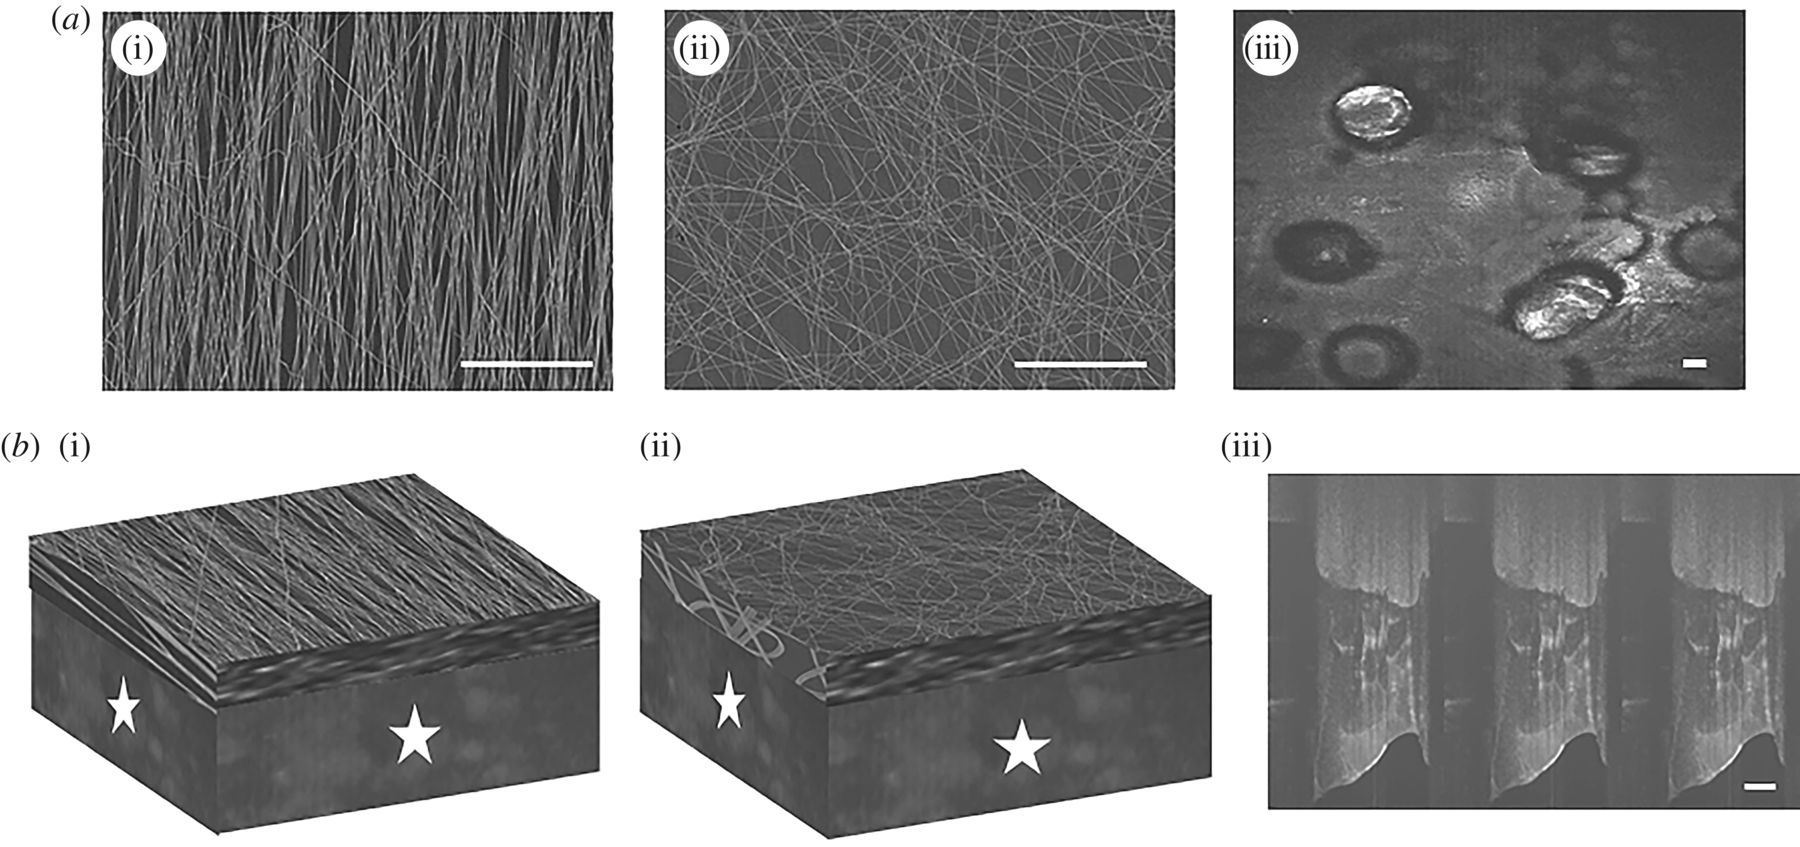 Induction of zonal-specific cellular morphology and matrix synthesis